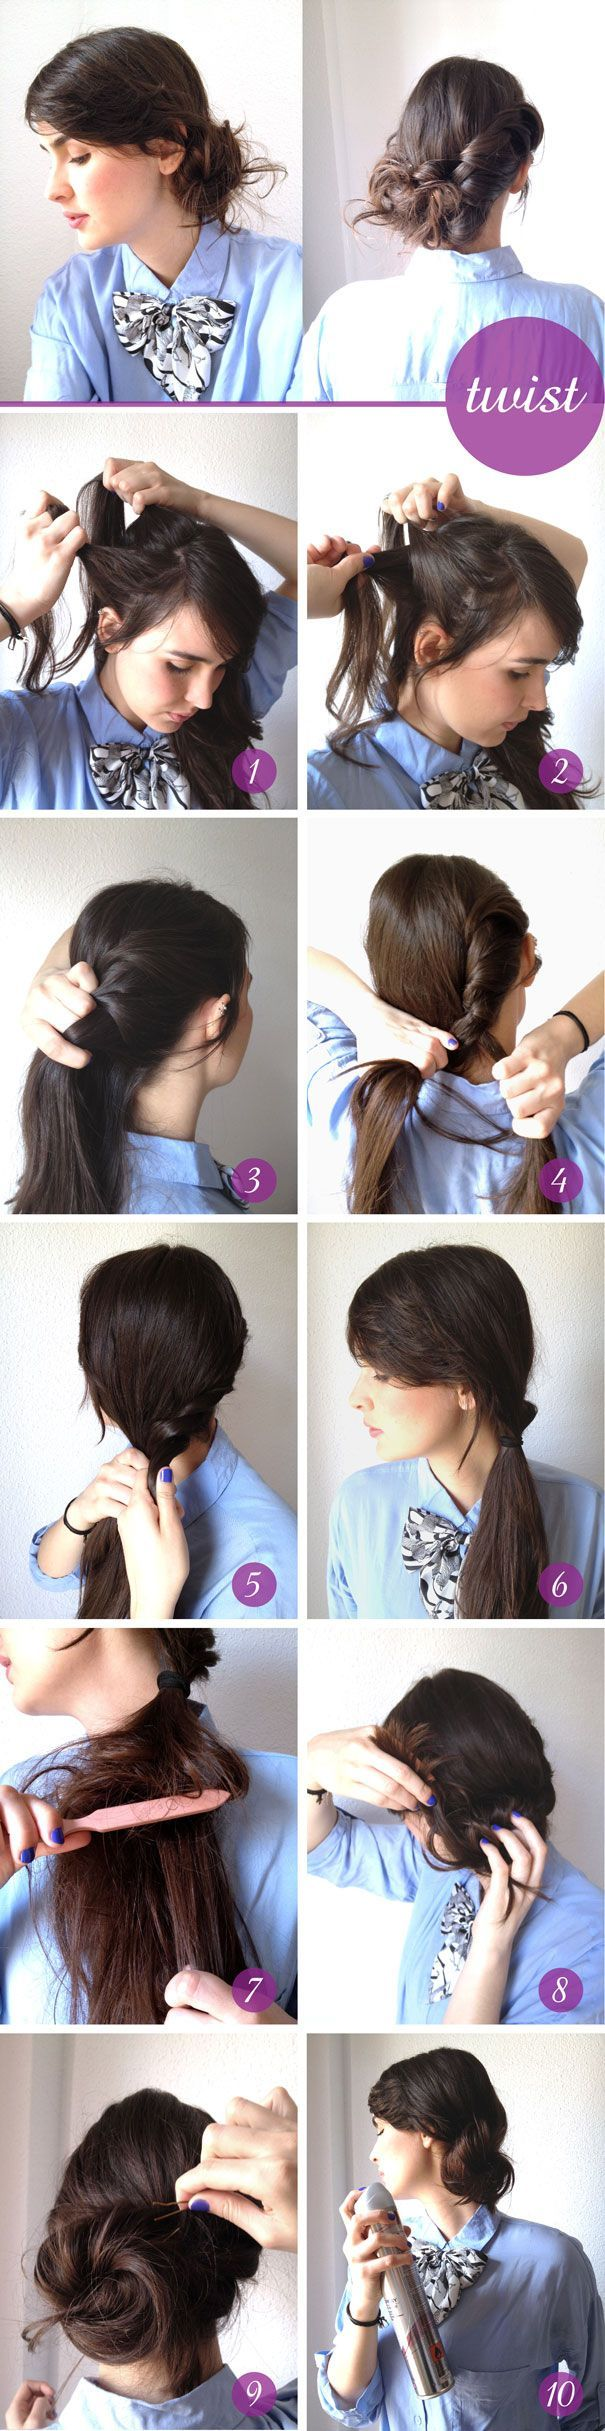 How To Get Summers 27 Best Hairstyles In 2019 Hair Hair Styles